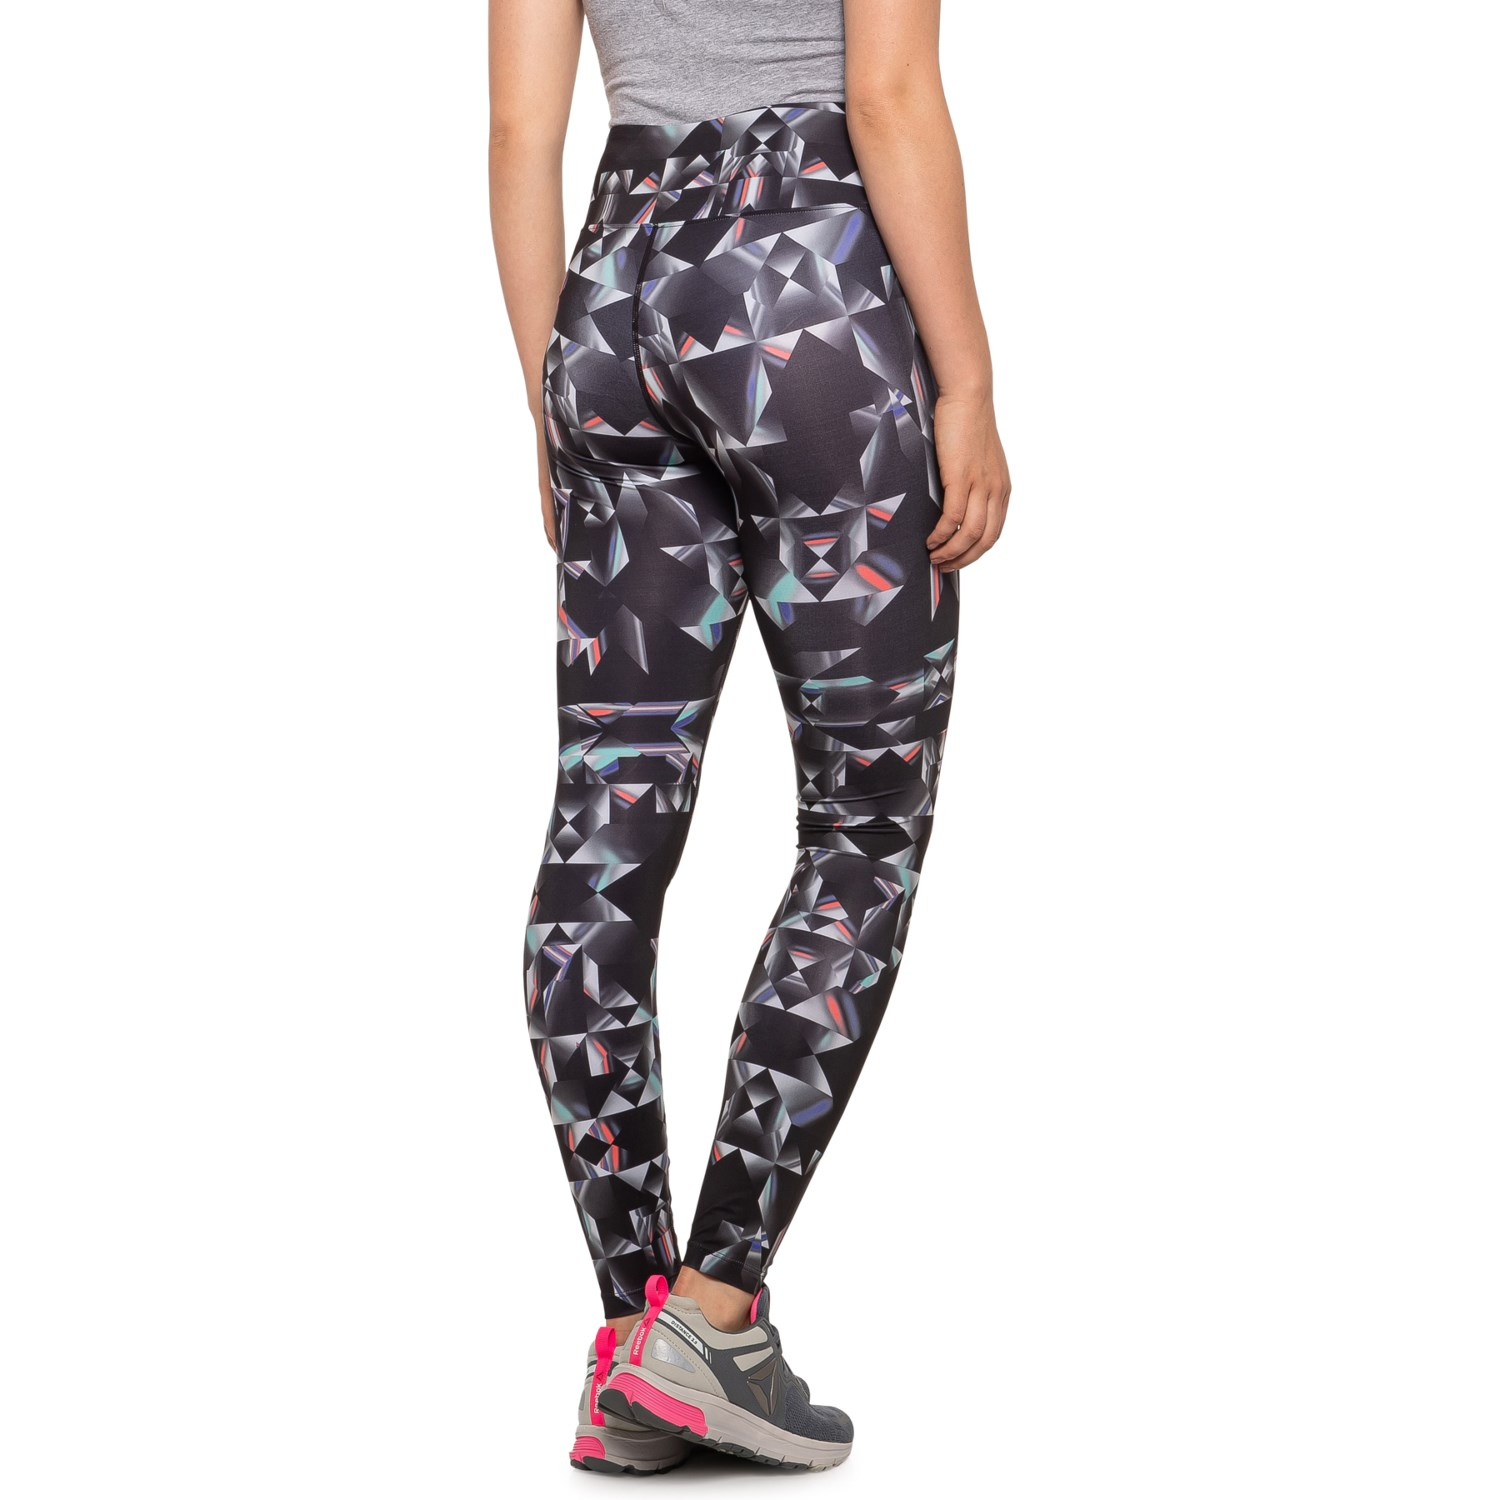 ASICS Ankle Running Tights (For Women)